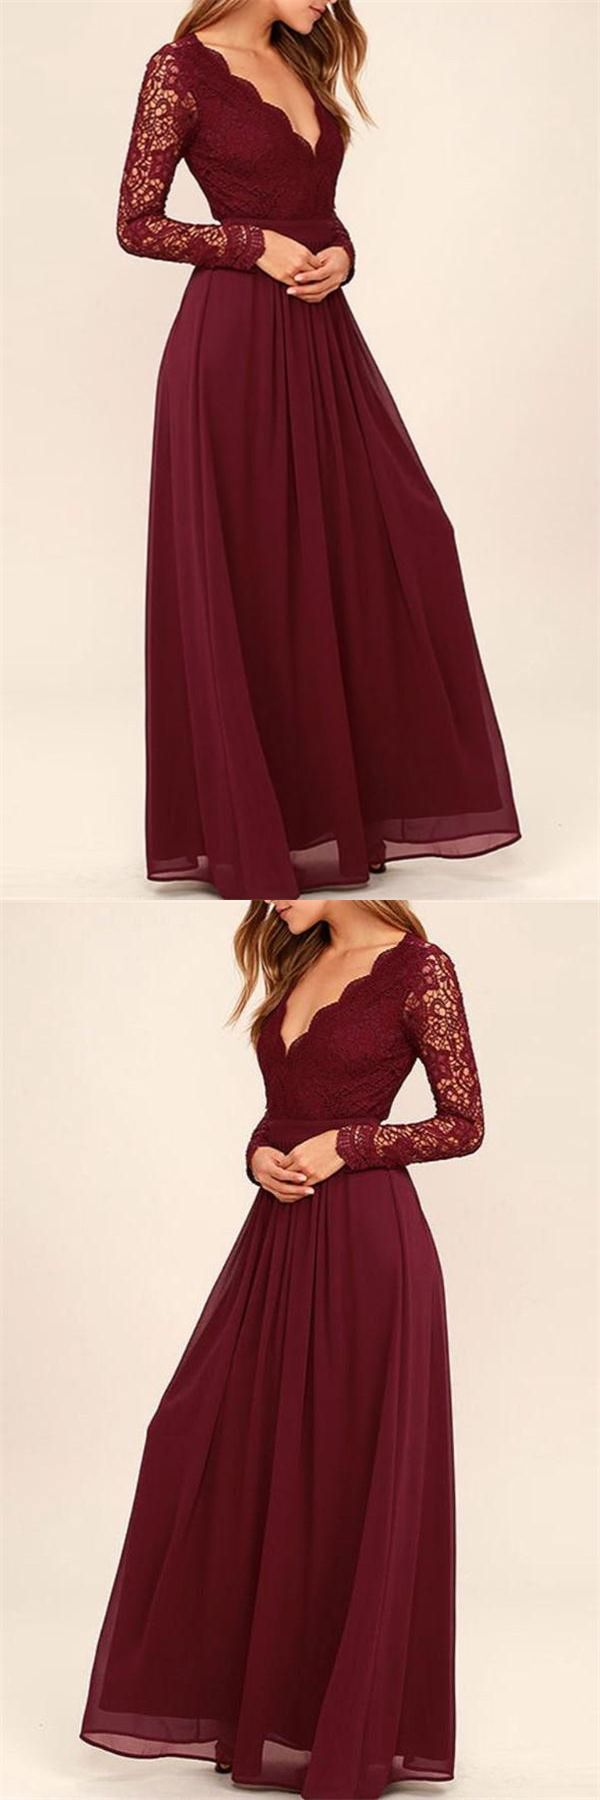 Bridesmaid Dresses,Bridesmaid Gowns,Long Sleeves Prom Dresses,Mother Of The Bridal Dresses,Chiffon Dresses,Burgundy Bridesmaid Dresses,Long Bridesmaid Dresses,Cheap Bridesmaid Dresses,V-neck Bridesmaid Dresses,Backless Bridesmaid Dresses